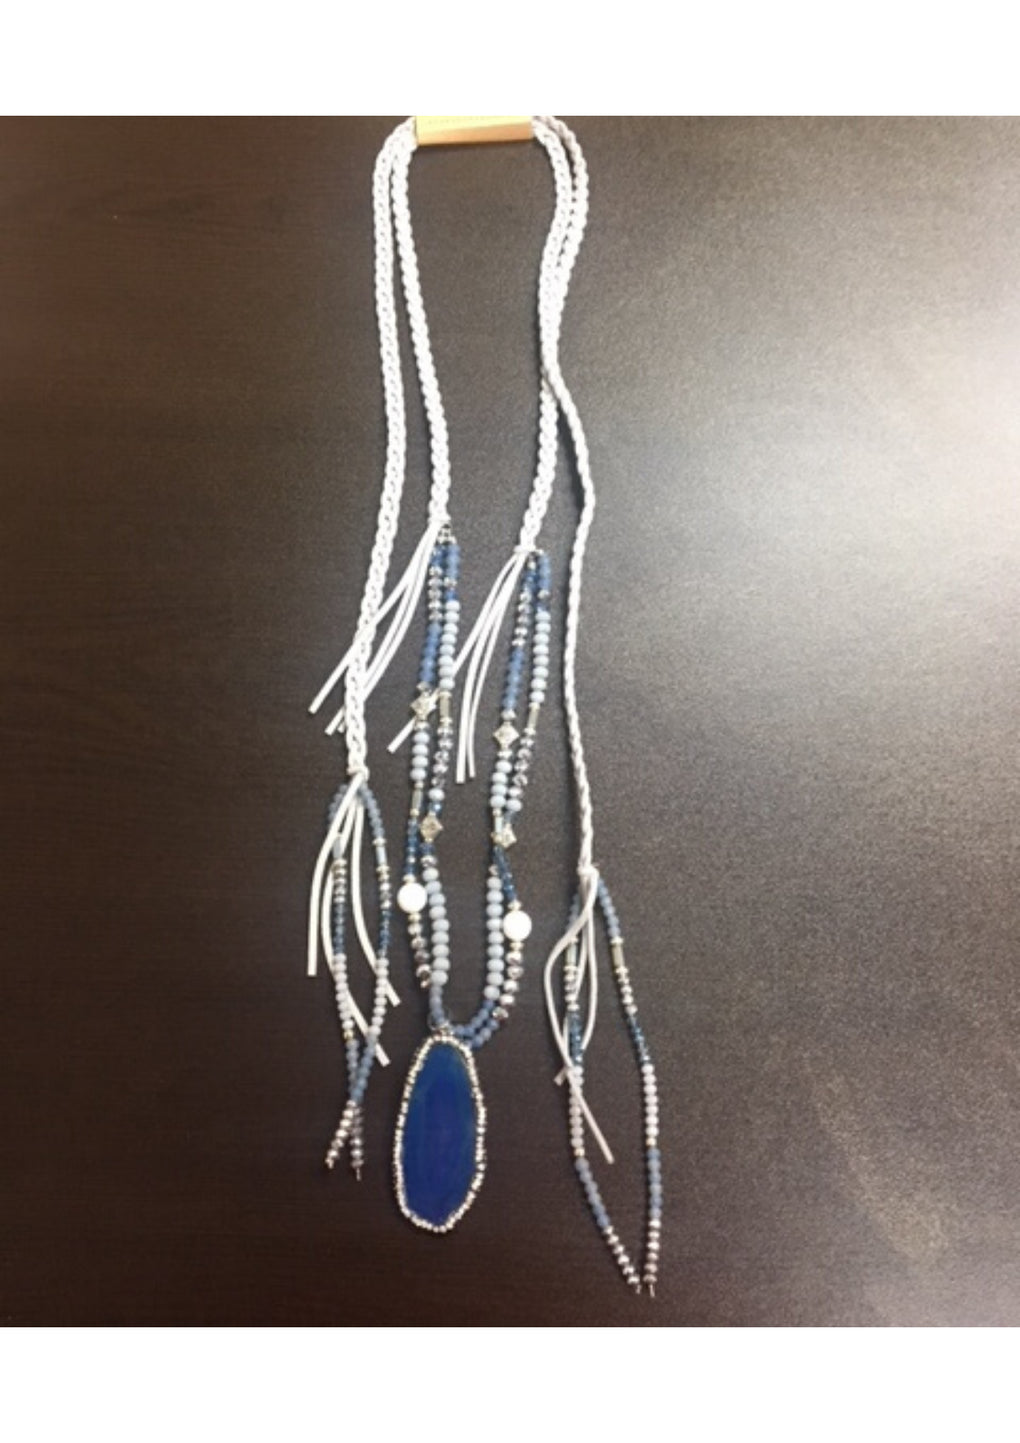 Beaded Tassel With Pendant Necklace